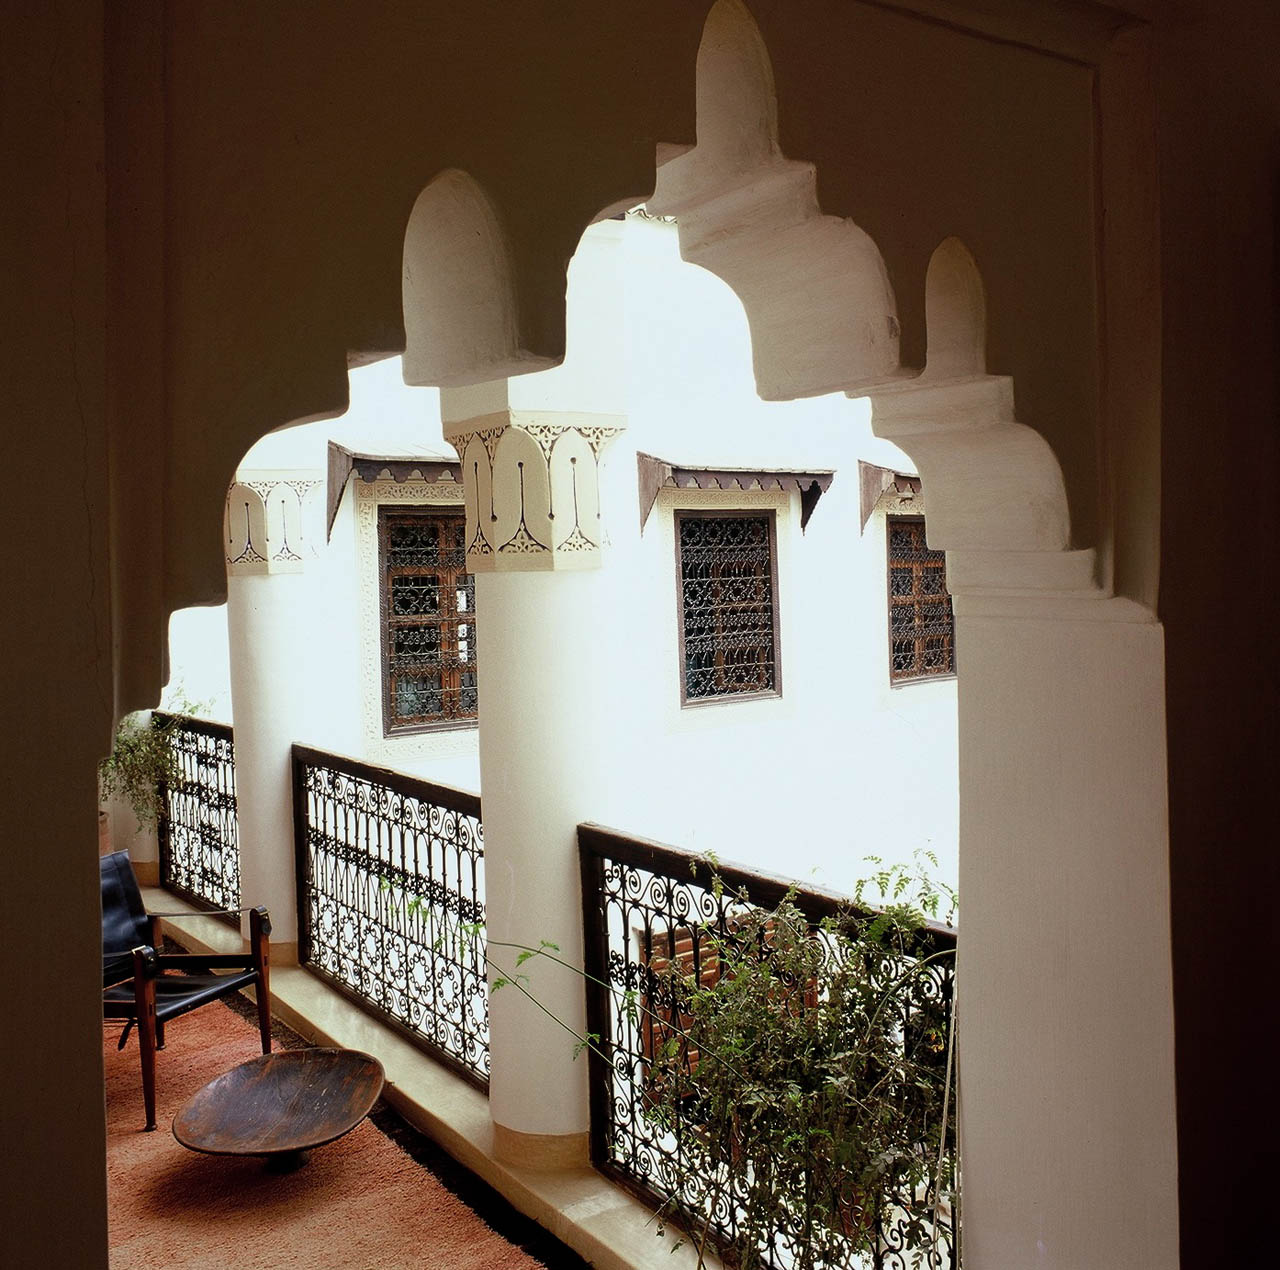   The private balcony